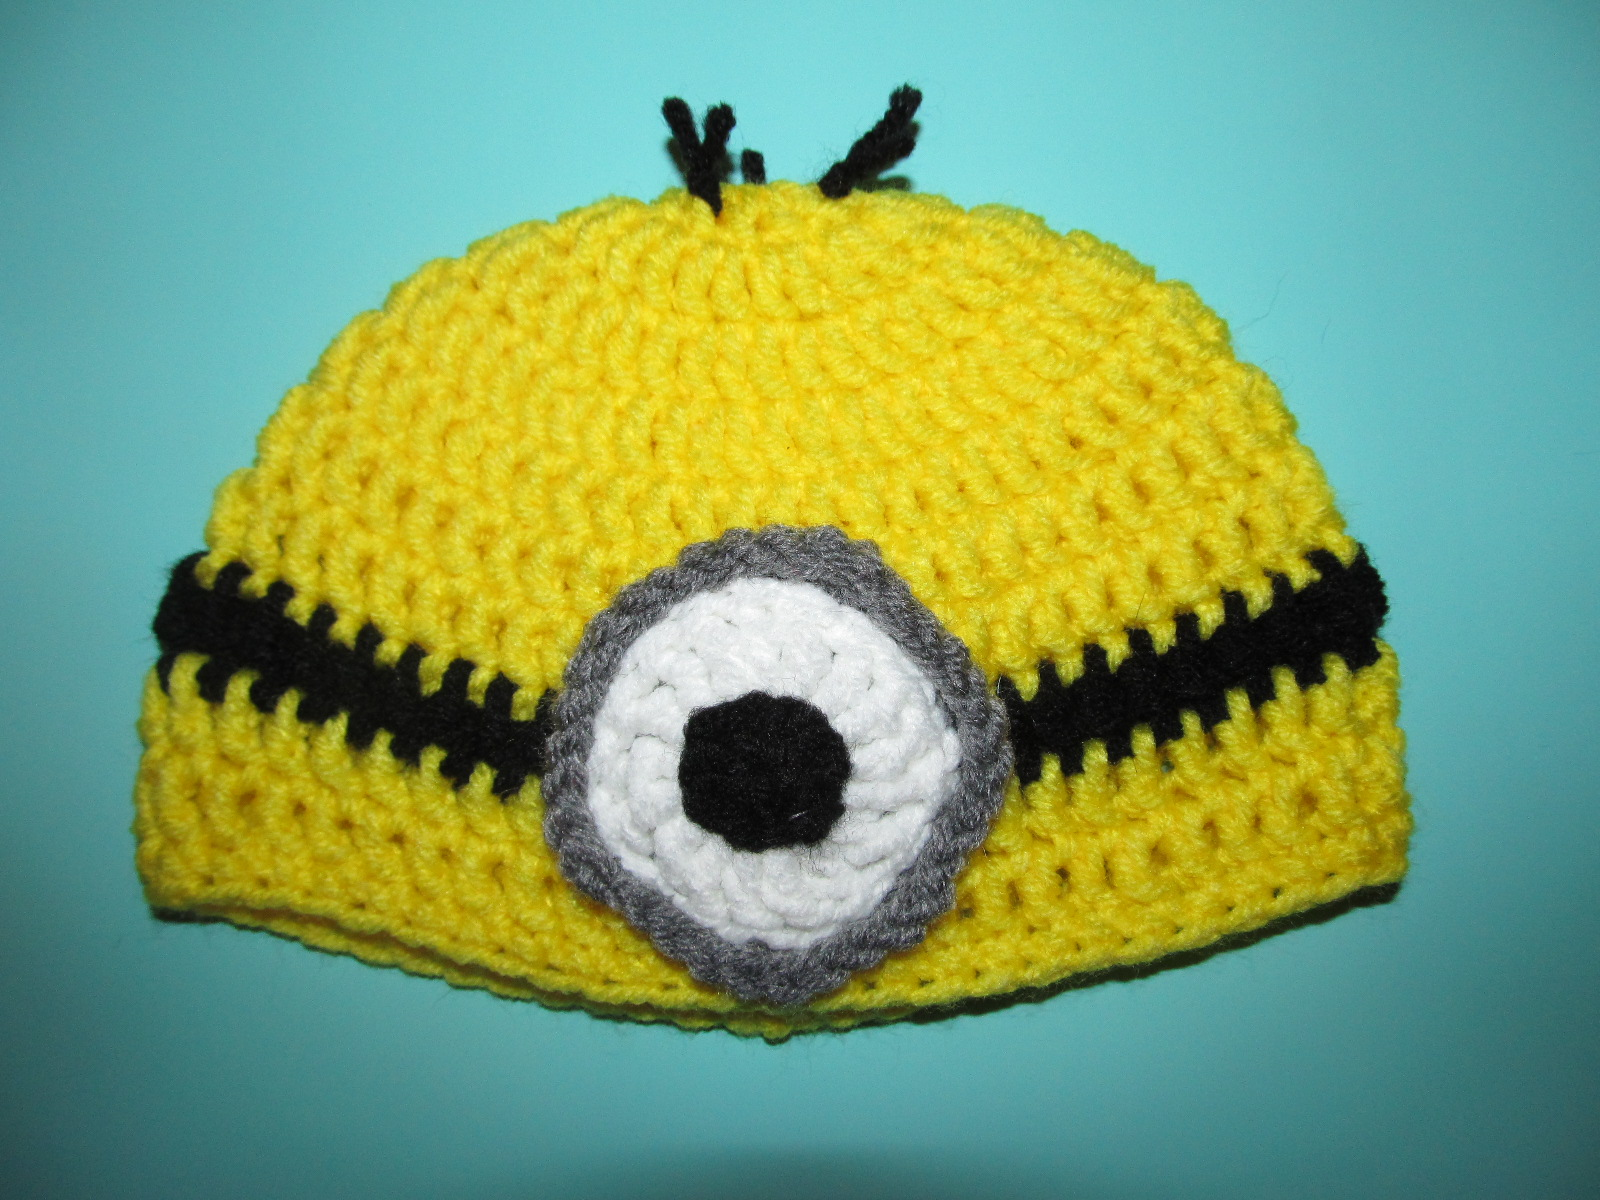 Crochet Hat Pattern For Minion : Simply Crochet and Other Crafts: Despicable Me Minions ...